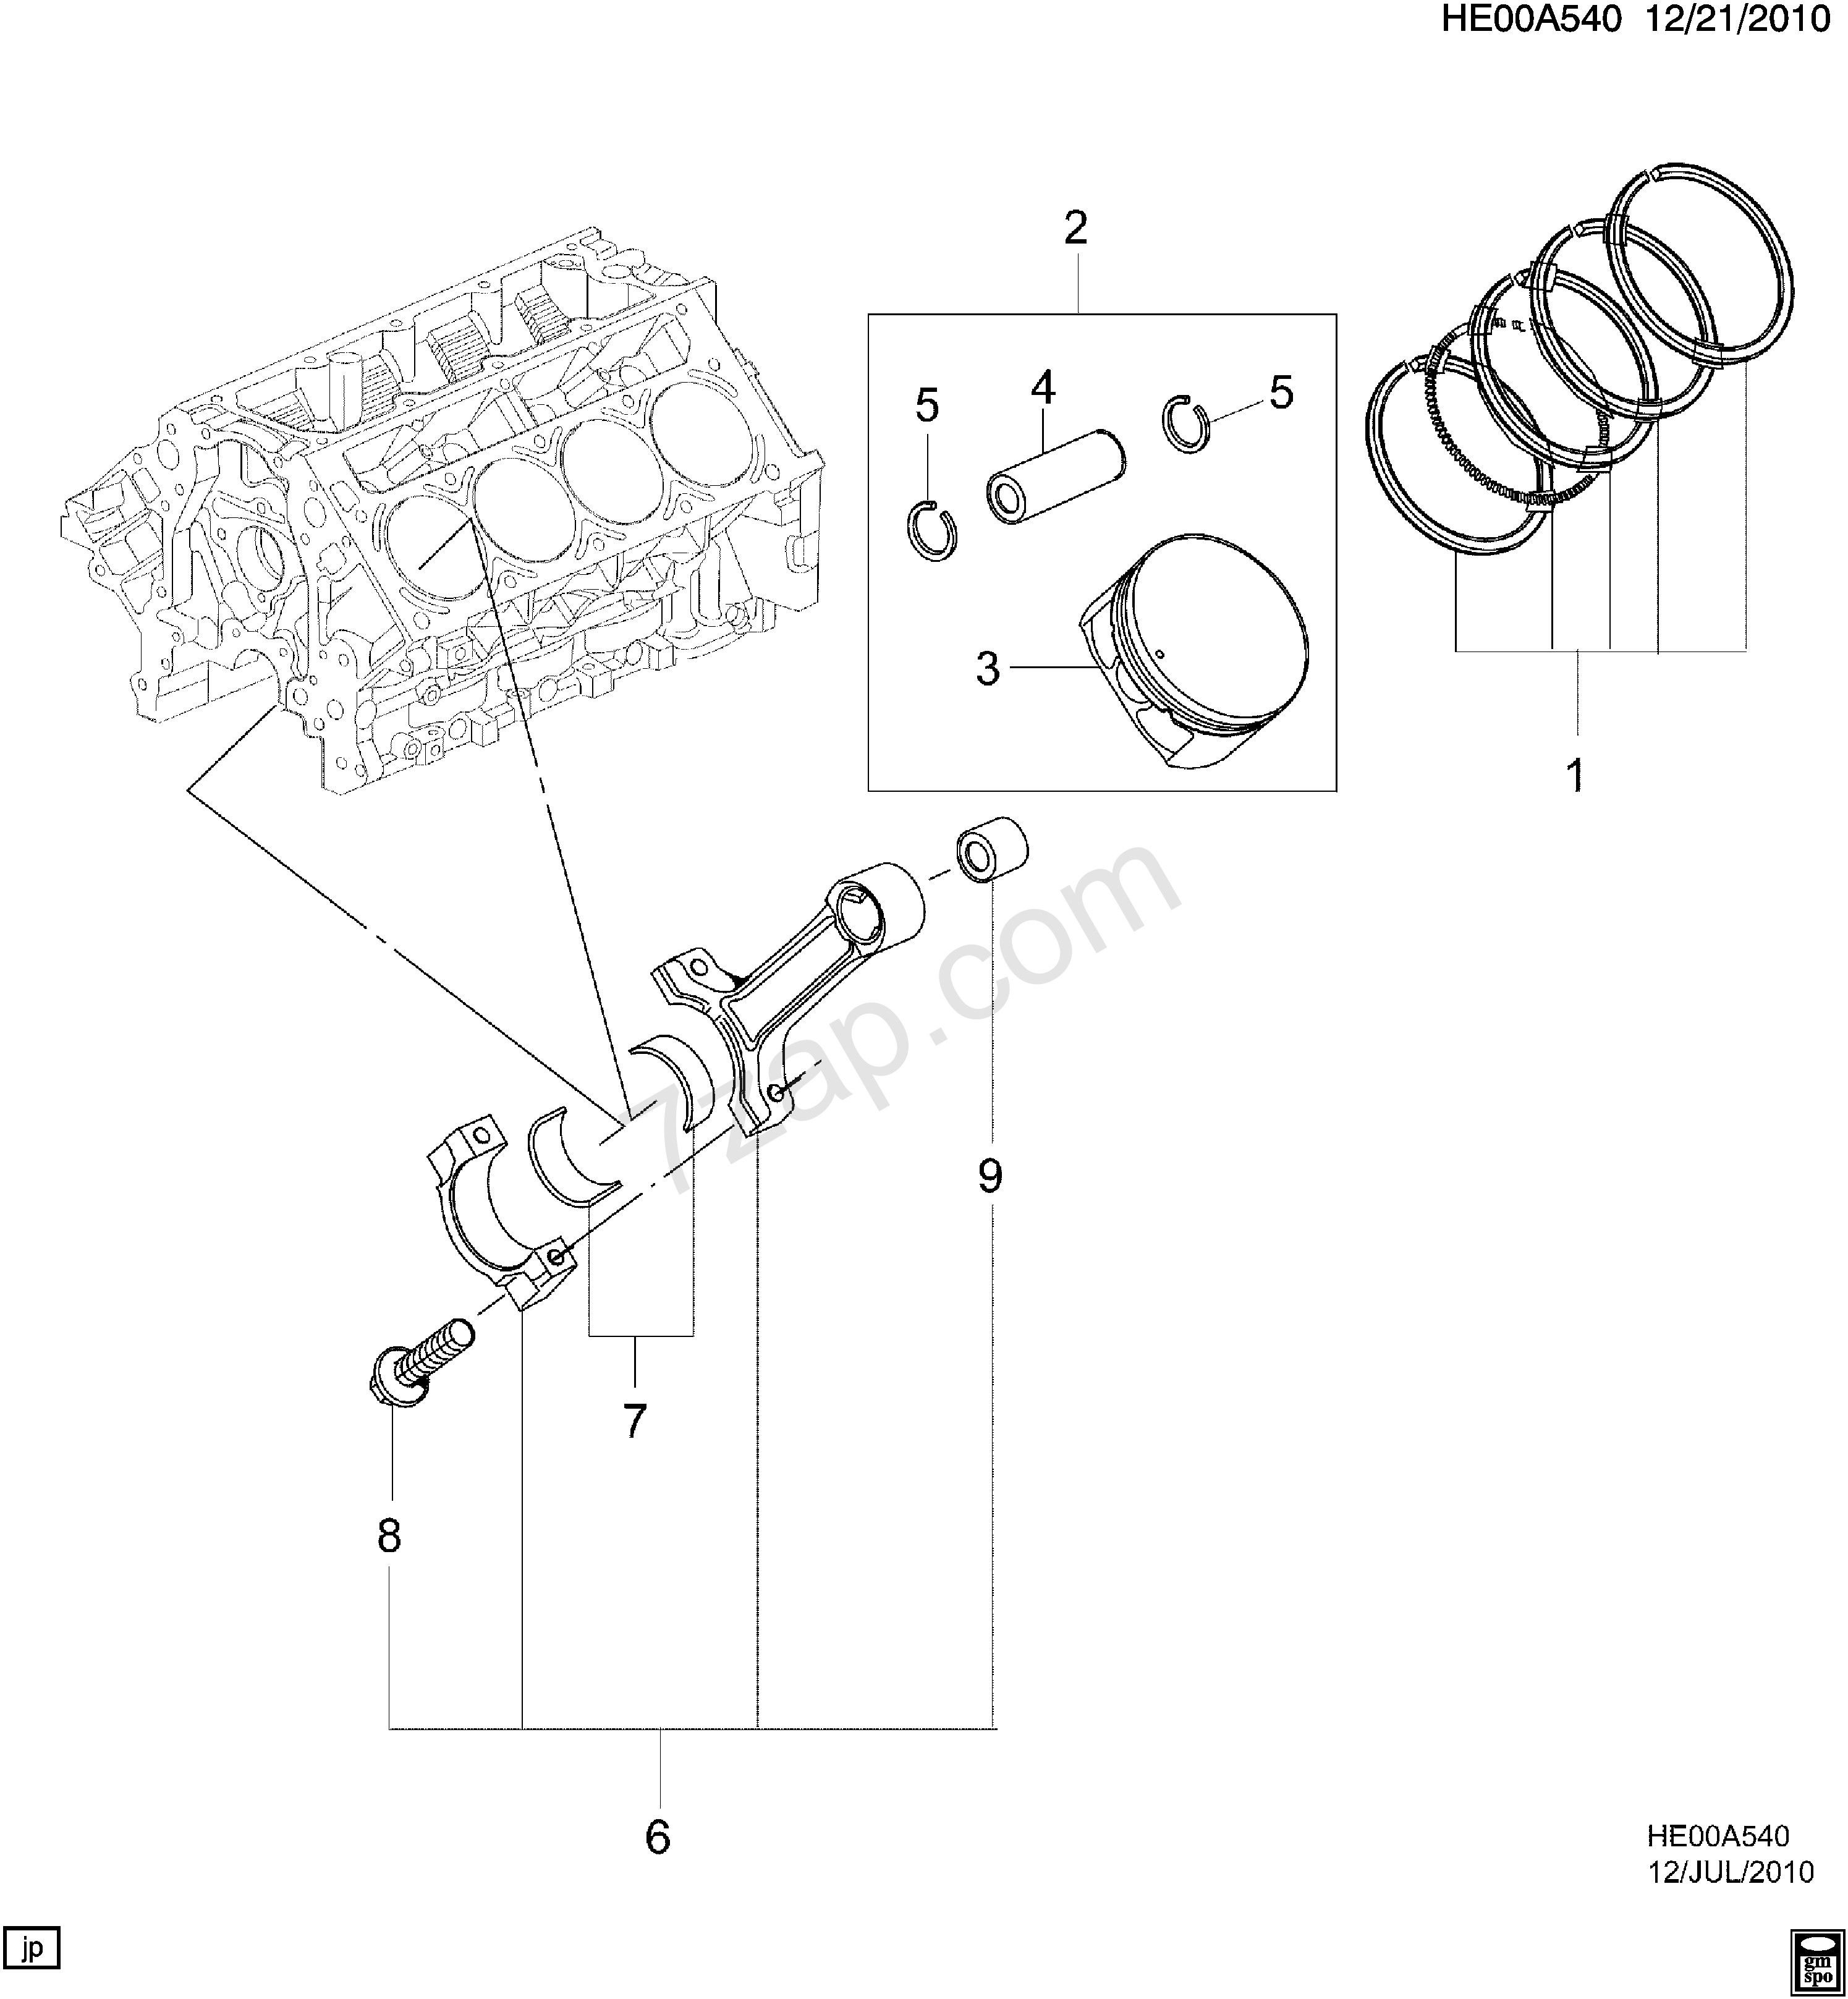 car engine diagram piston suzuki b100p piston crankshaft